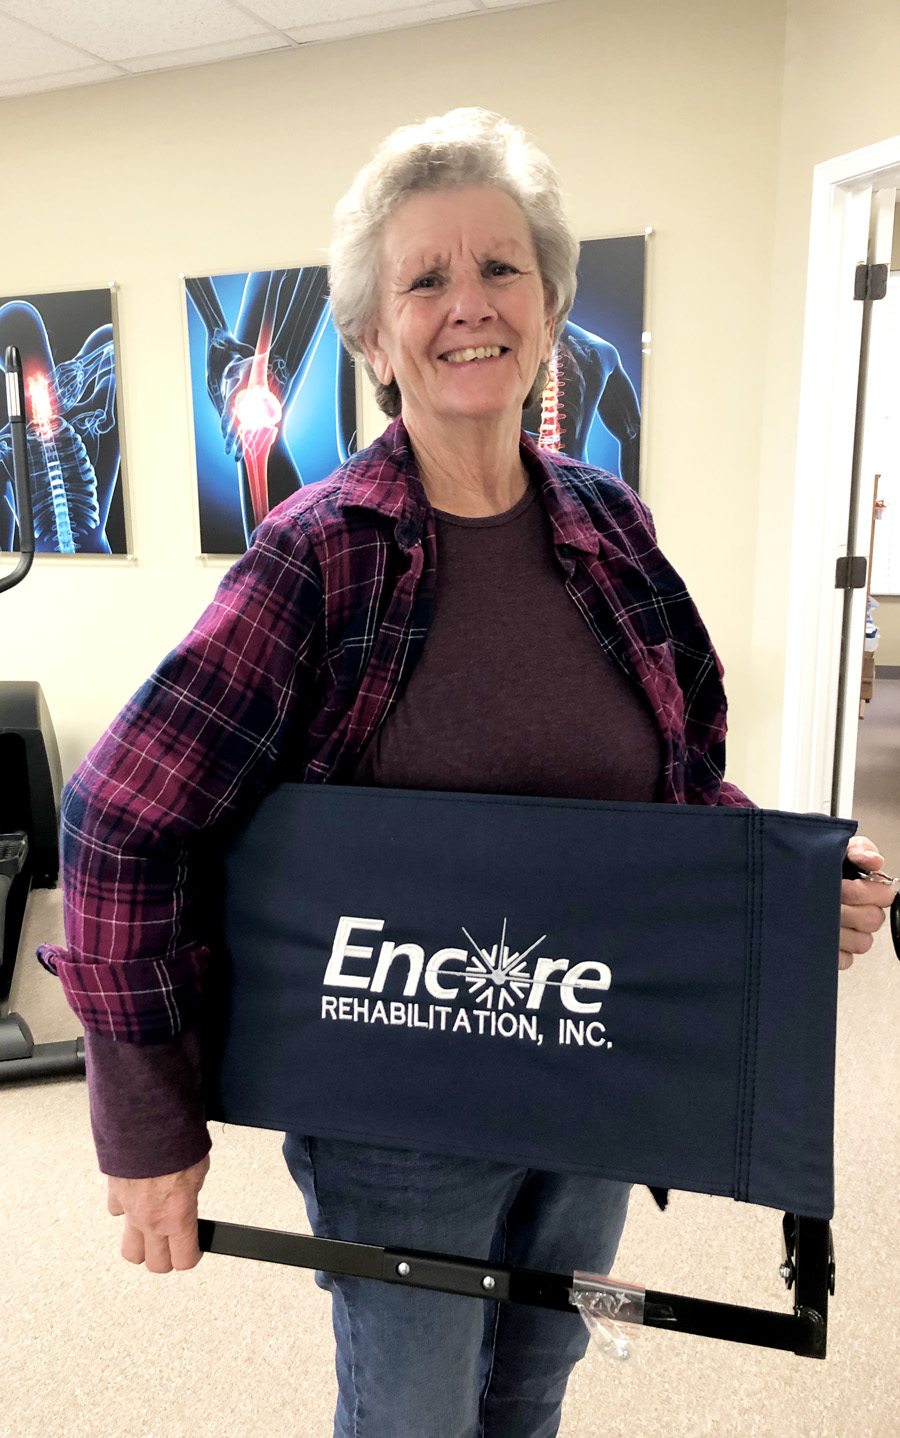 Linda Stinson is Patient of the Month for #EncoreRehab Columbiana